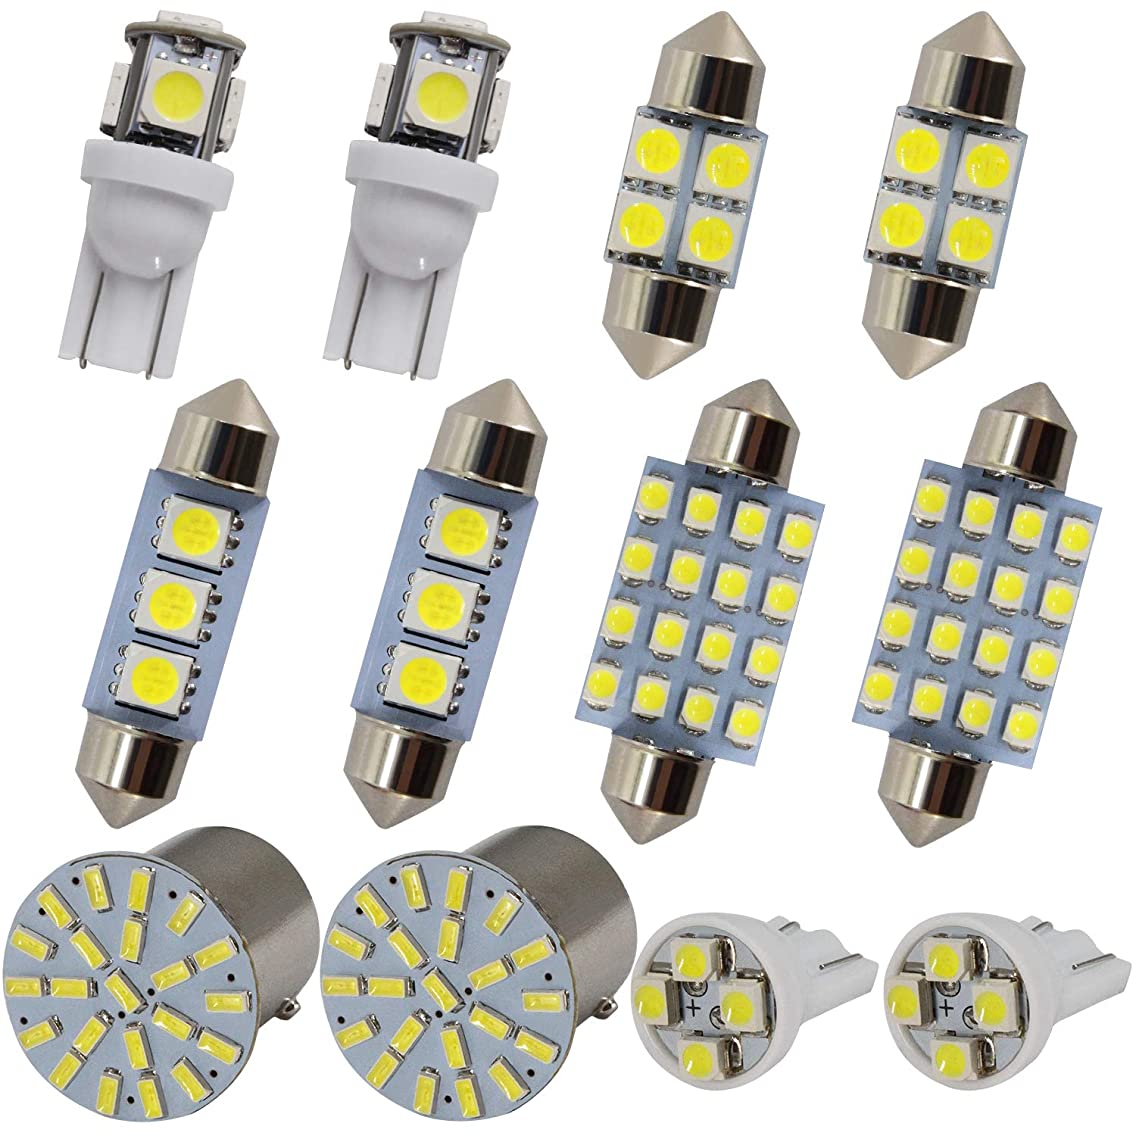 Festoon LED Bulbs+T10 W5W Wedge LED Bulbs+BAY15D 1157 LED Bulbs Combination 12 pcs Usually Used For Side light Position lamp License plate lamp Car interior lamp Wedge Light Tail lights